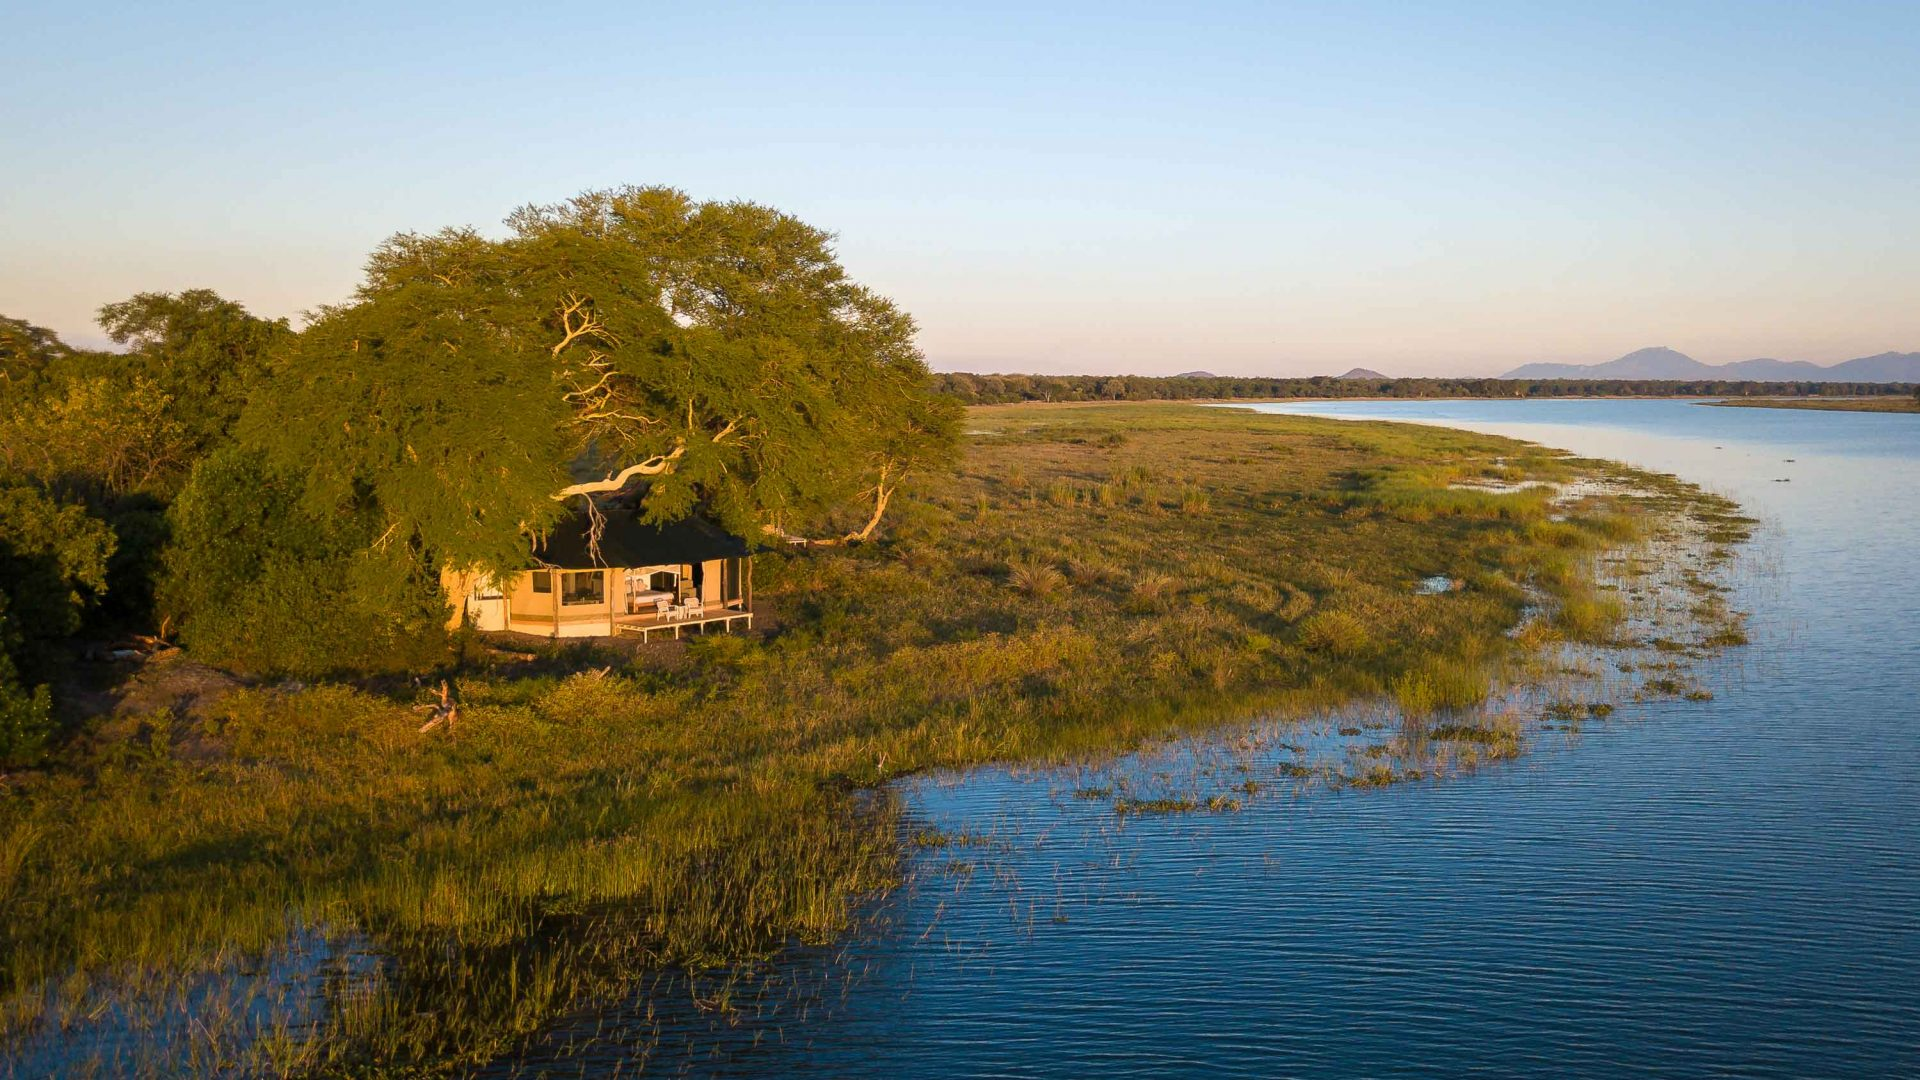 Accommodation sits on the river's edge at Kuthengo Camp in Liwonde National Park, Malawi.